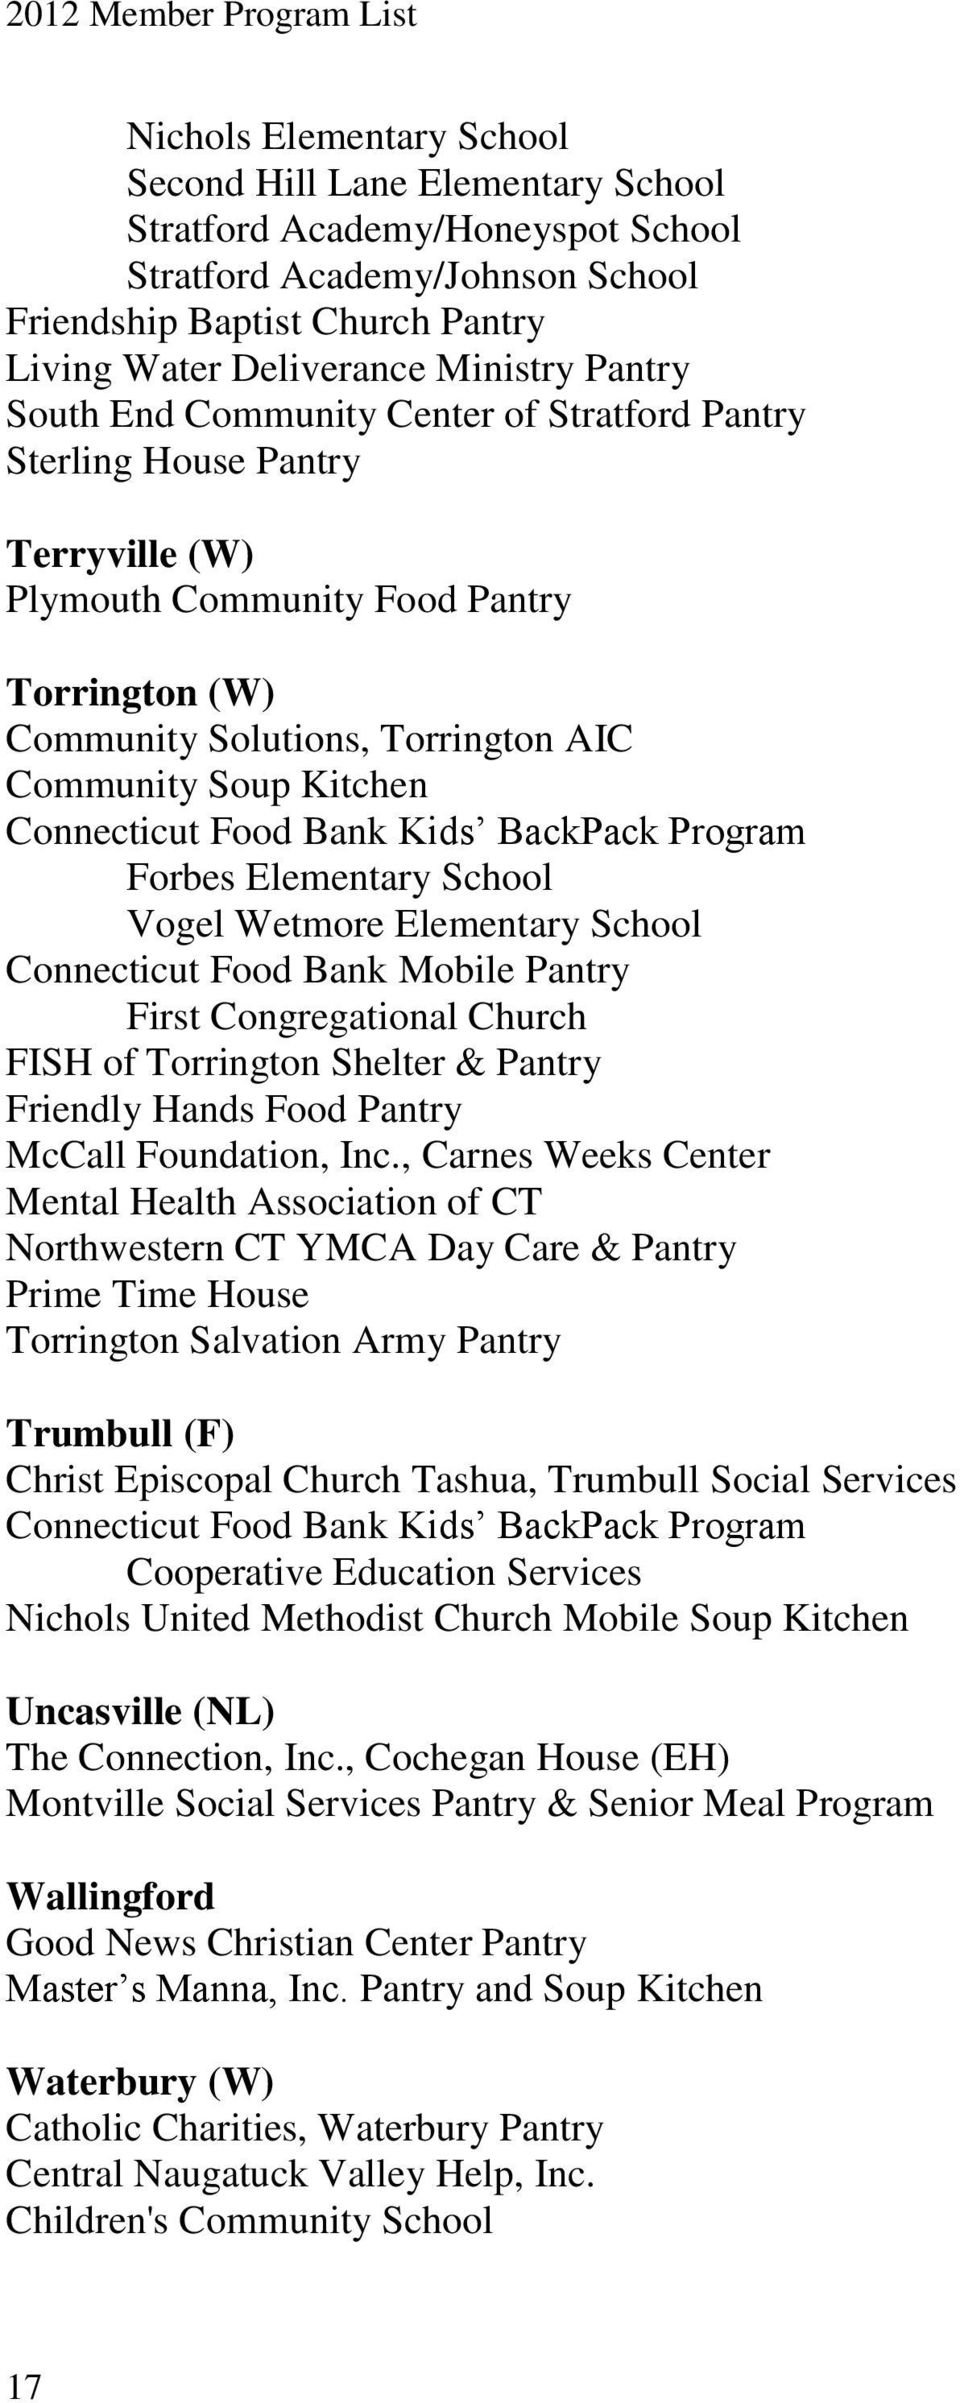 Forbes Elementary School Vogel Wetmore Elementary School First Congregational Church FISH of Torrington Shelter & Pantry Friendly Hands Food Pantry McCall Foundation, Inc.